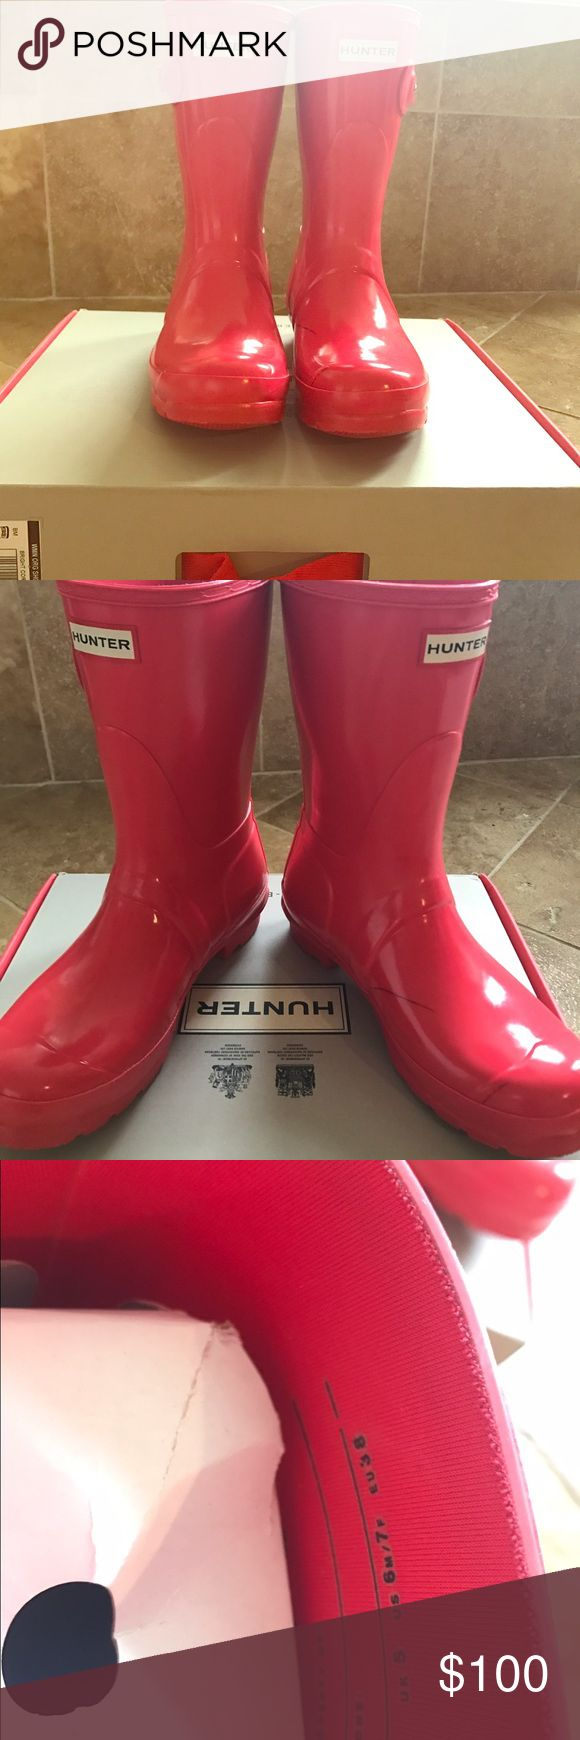 Rate Coral Hunter Boots Rare Coral Hunter Boots! Short boots. Sz 7 left boot has marking that can be rubbed out. Shown in picture Hunter Boots Shoes Winter & Rain Boots